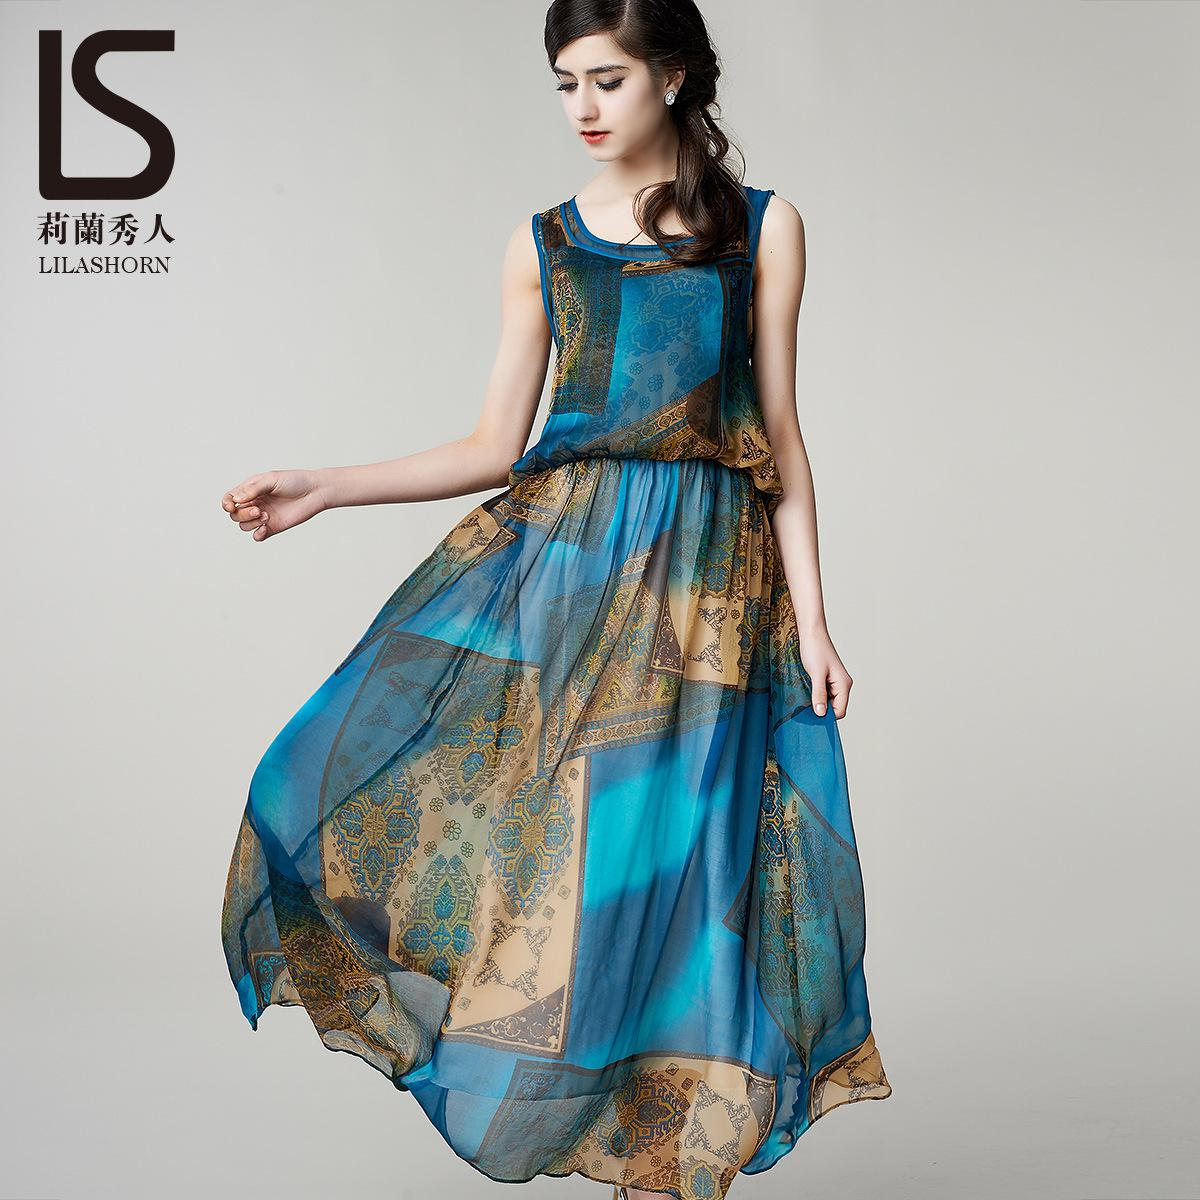 Silk Summer Dresses